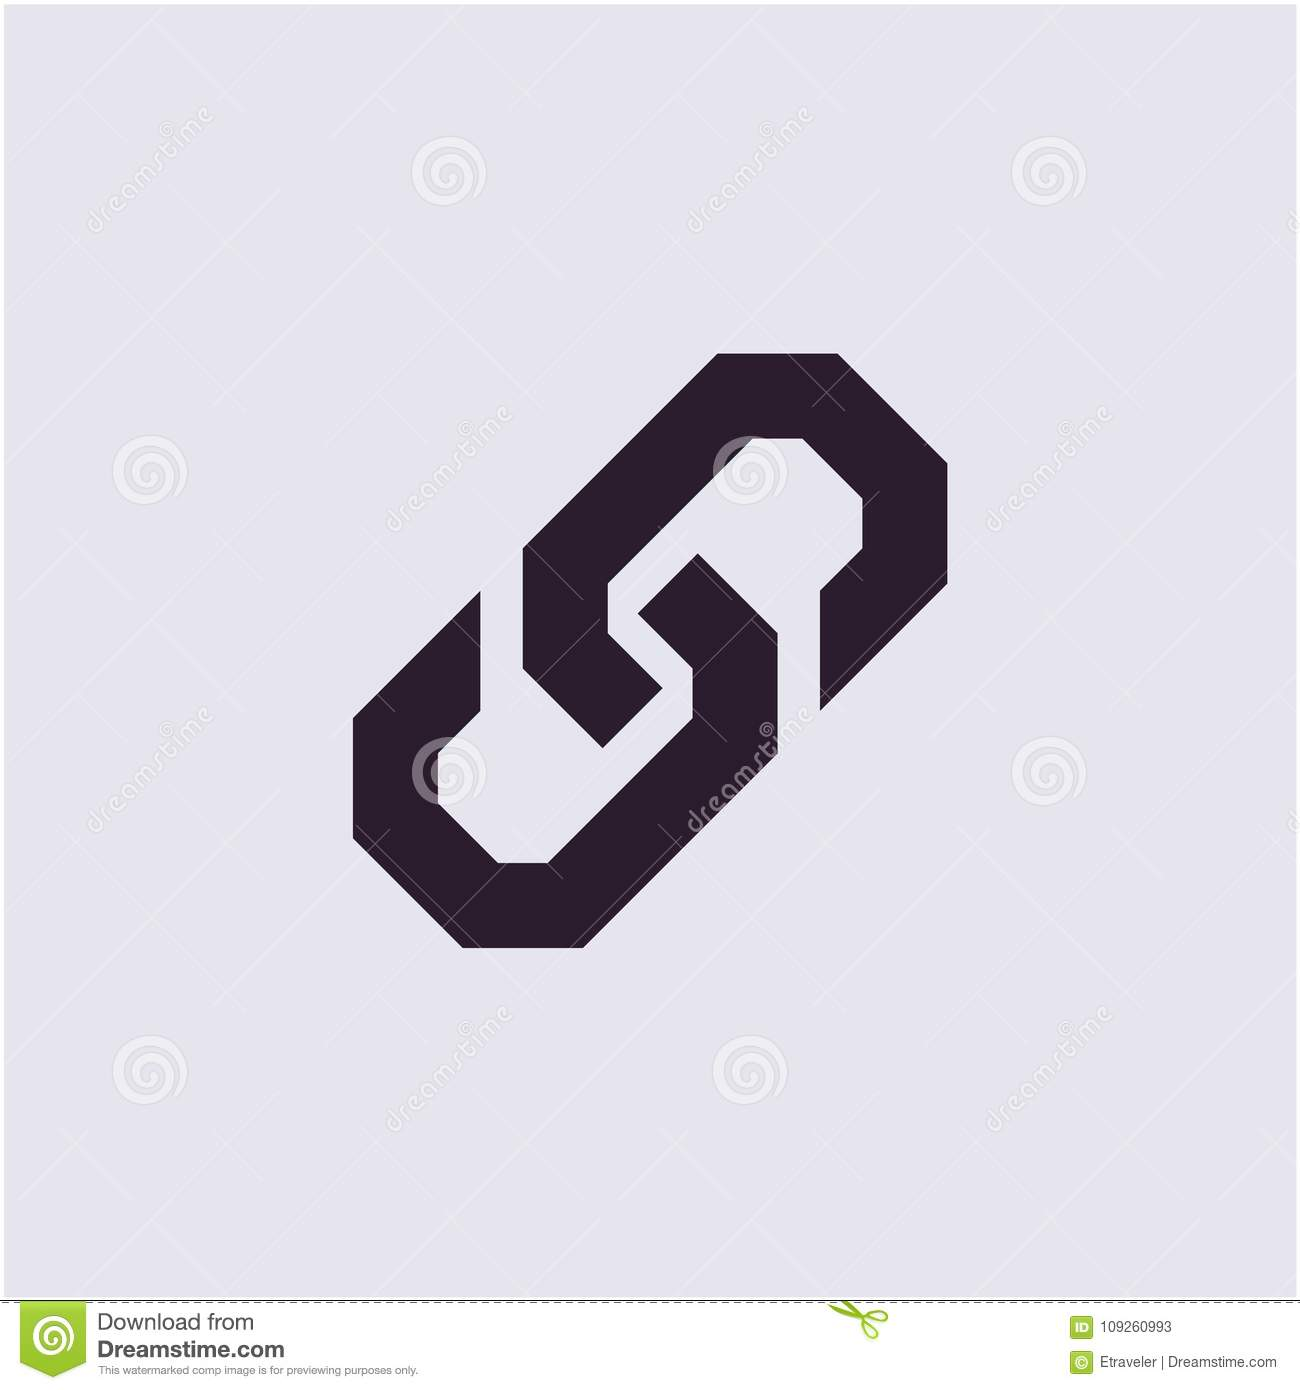 Link Icon Chain Icon Stock Vector Illustration Of Concept 109260993